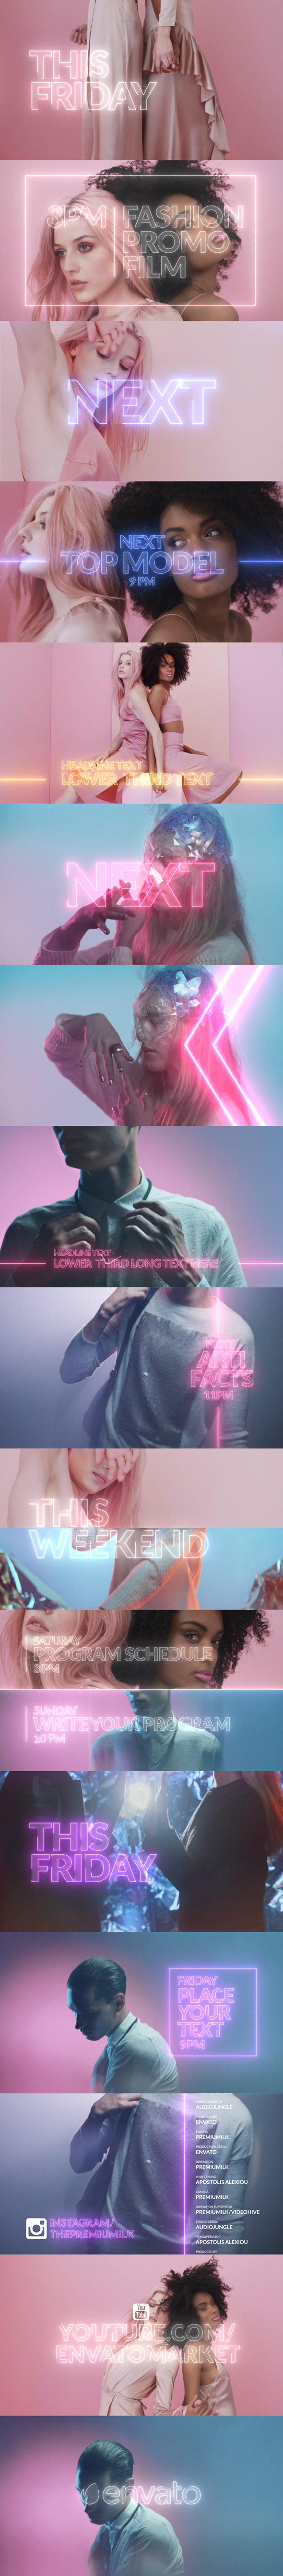 Neon Broadcast Package - 7